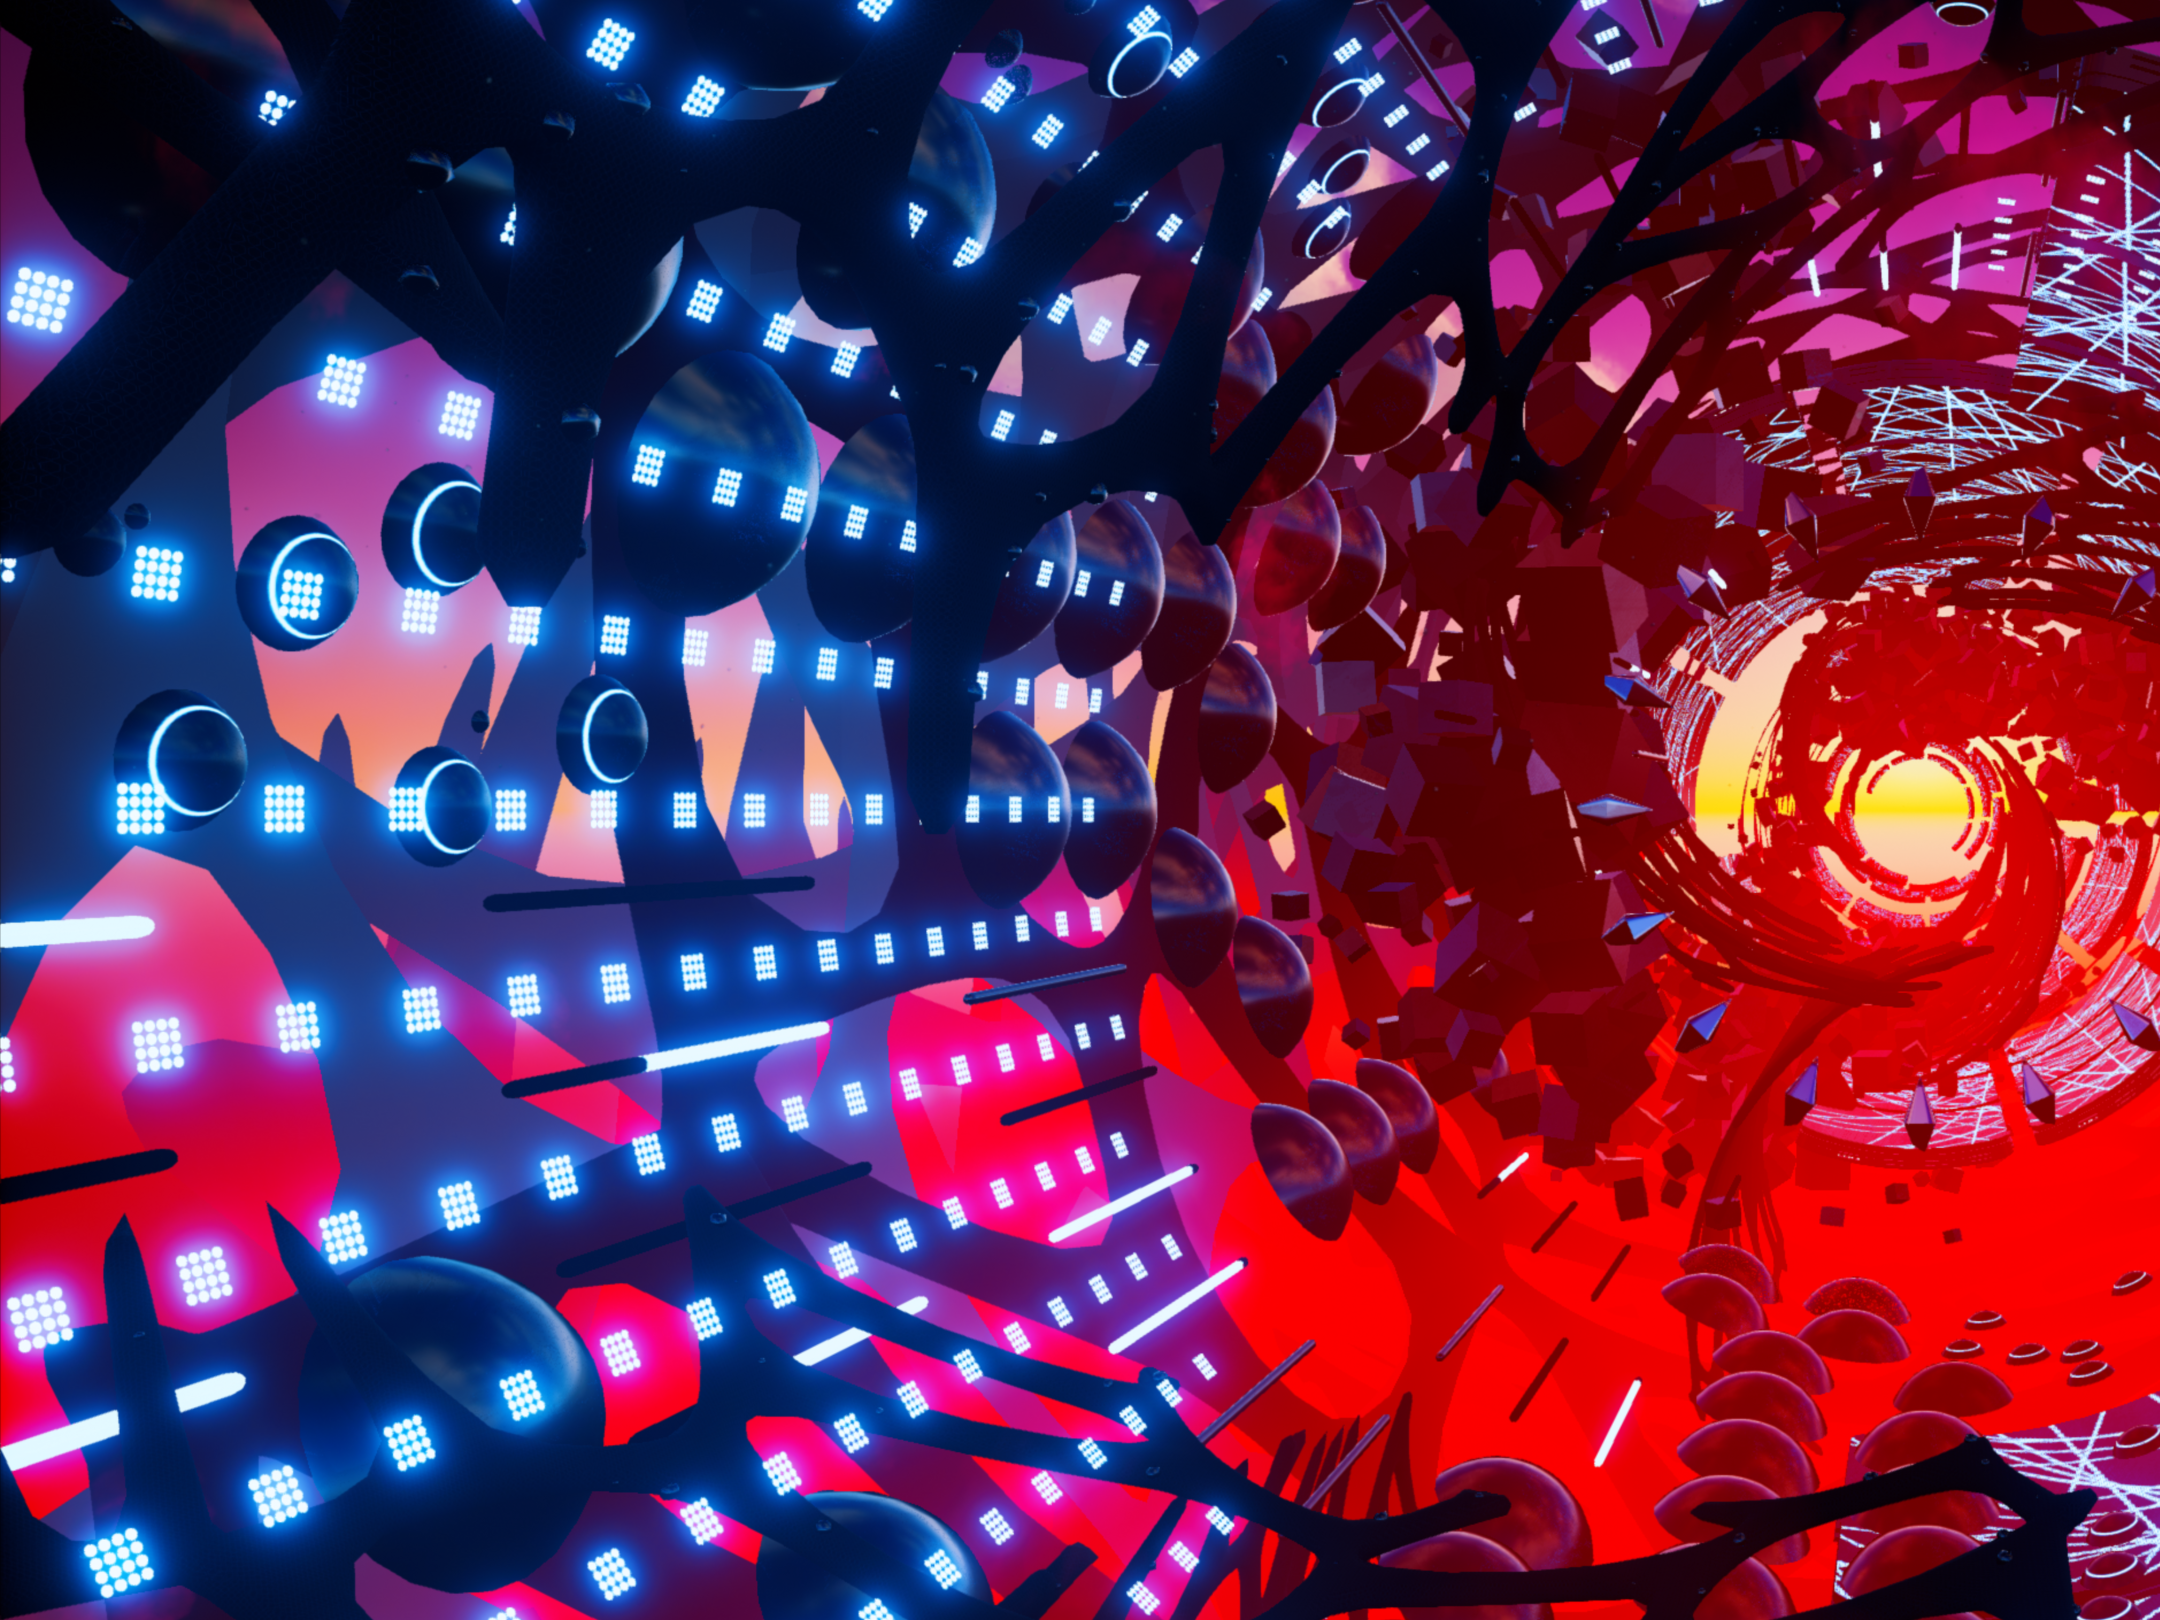 Ride with us - Fantasynth is an audio-reactive experience designed for Virtual Reality.Glide through a procedurally populated environment that comes alight with the music.Featuring the song Chez Nous by N'to.Duration: 7 minutes.